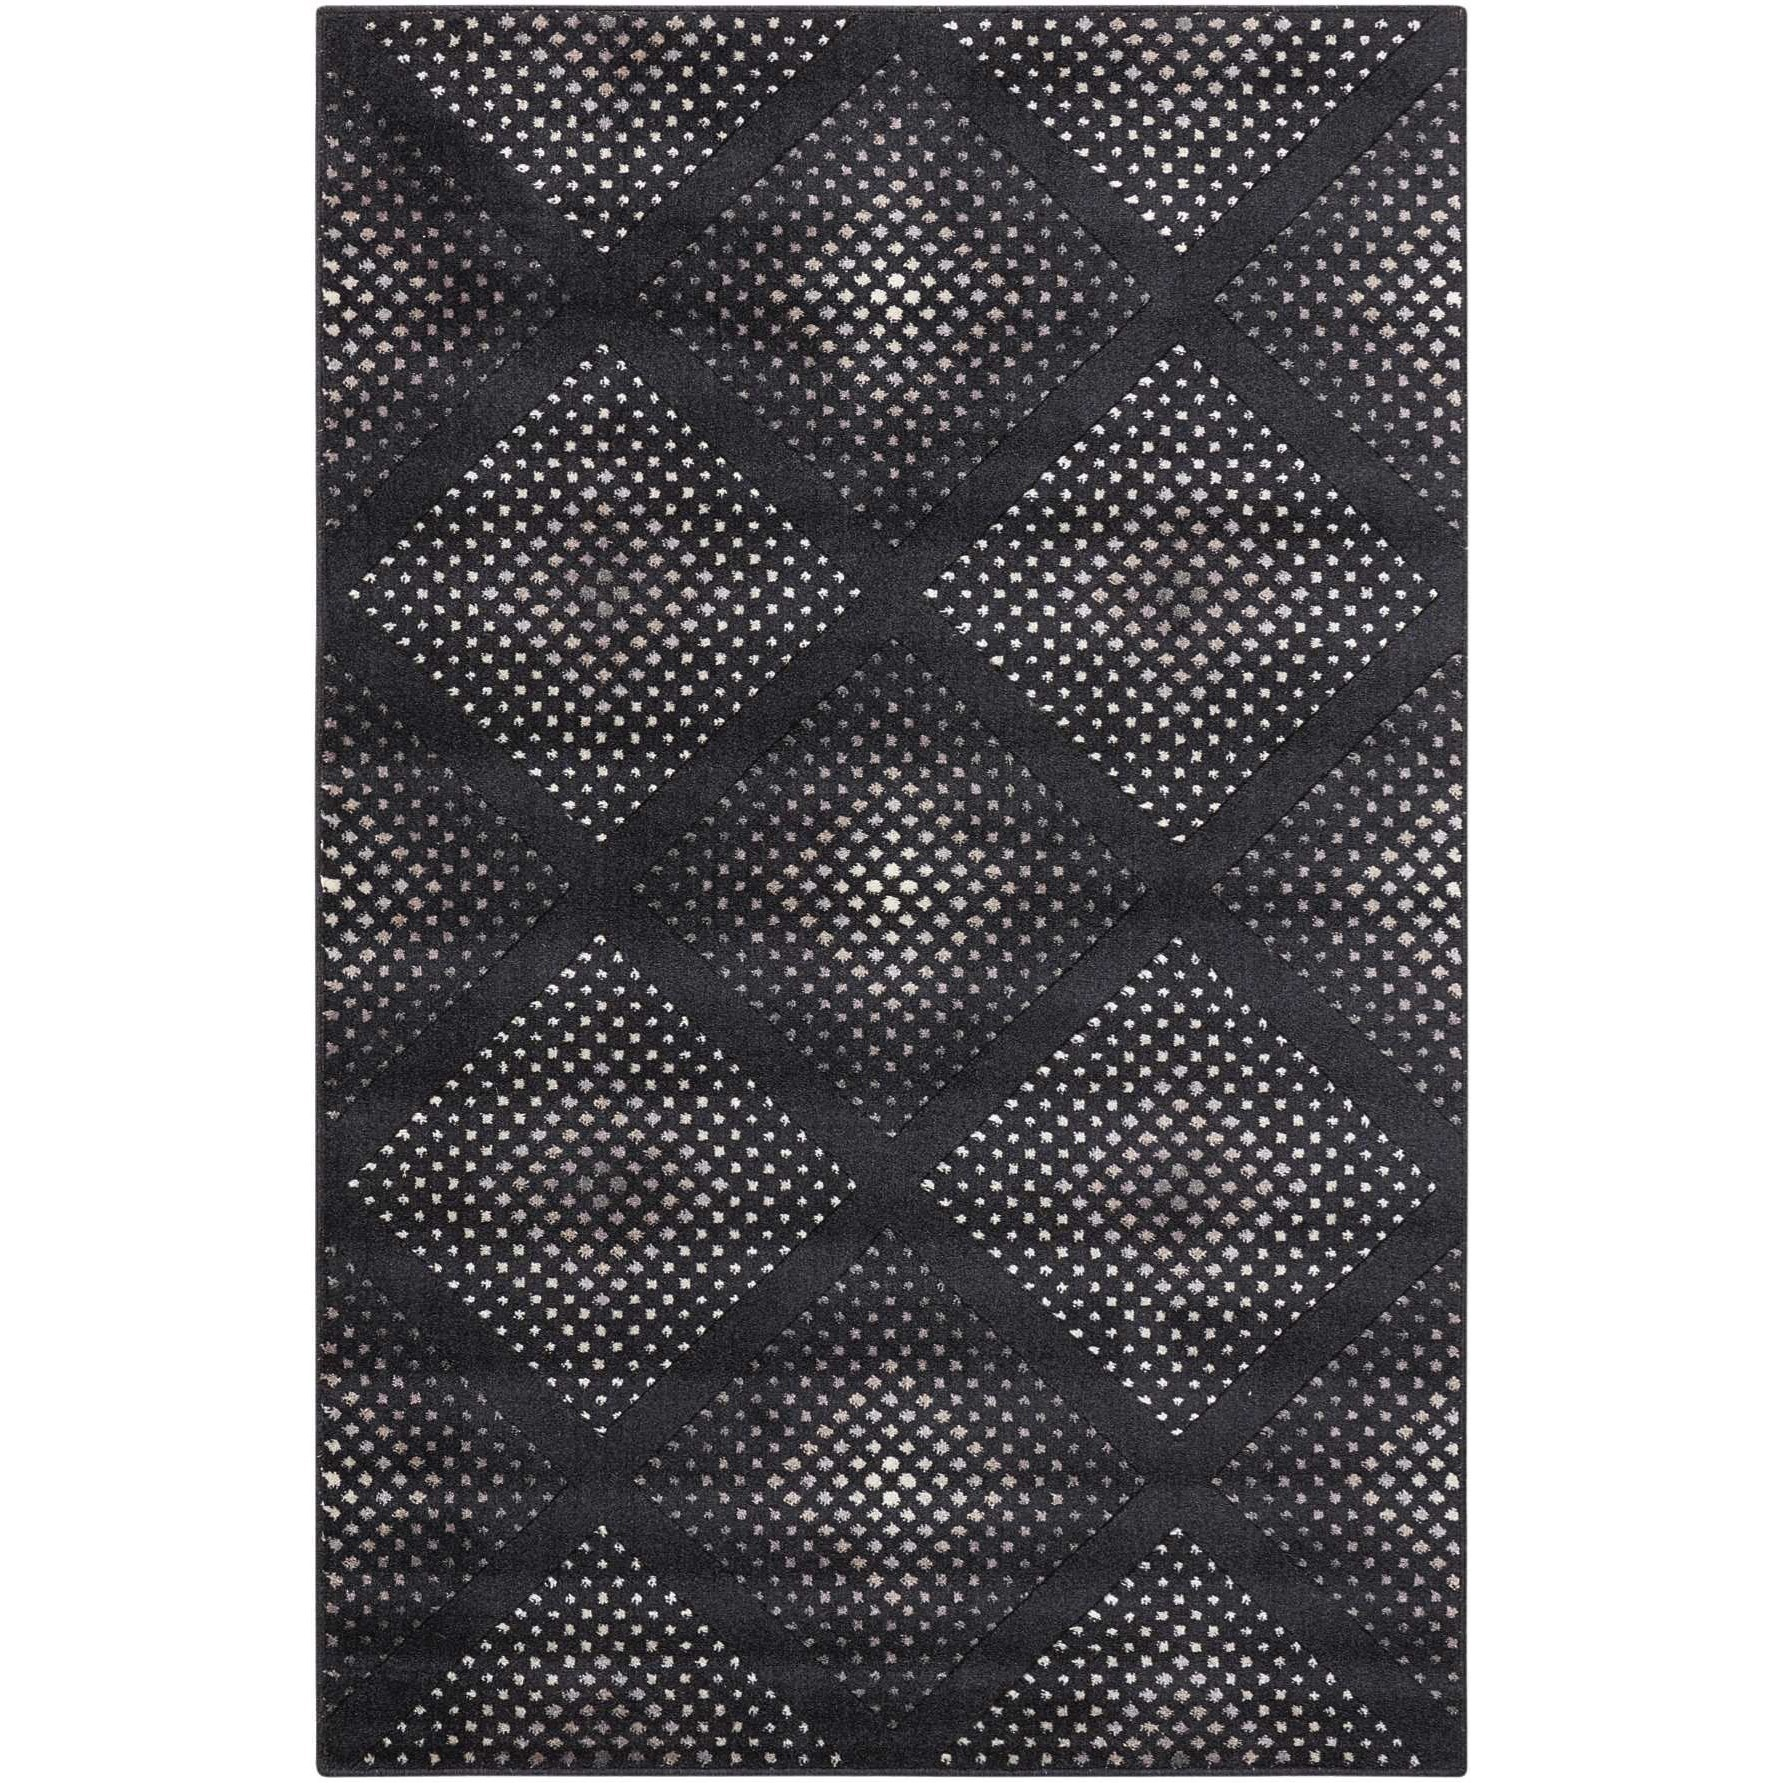 """Utopia 2'6"""" x 4'2"""" Onyx Rectangle Rug by Nourison at Home Collections Furniture"""